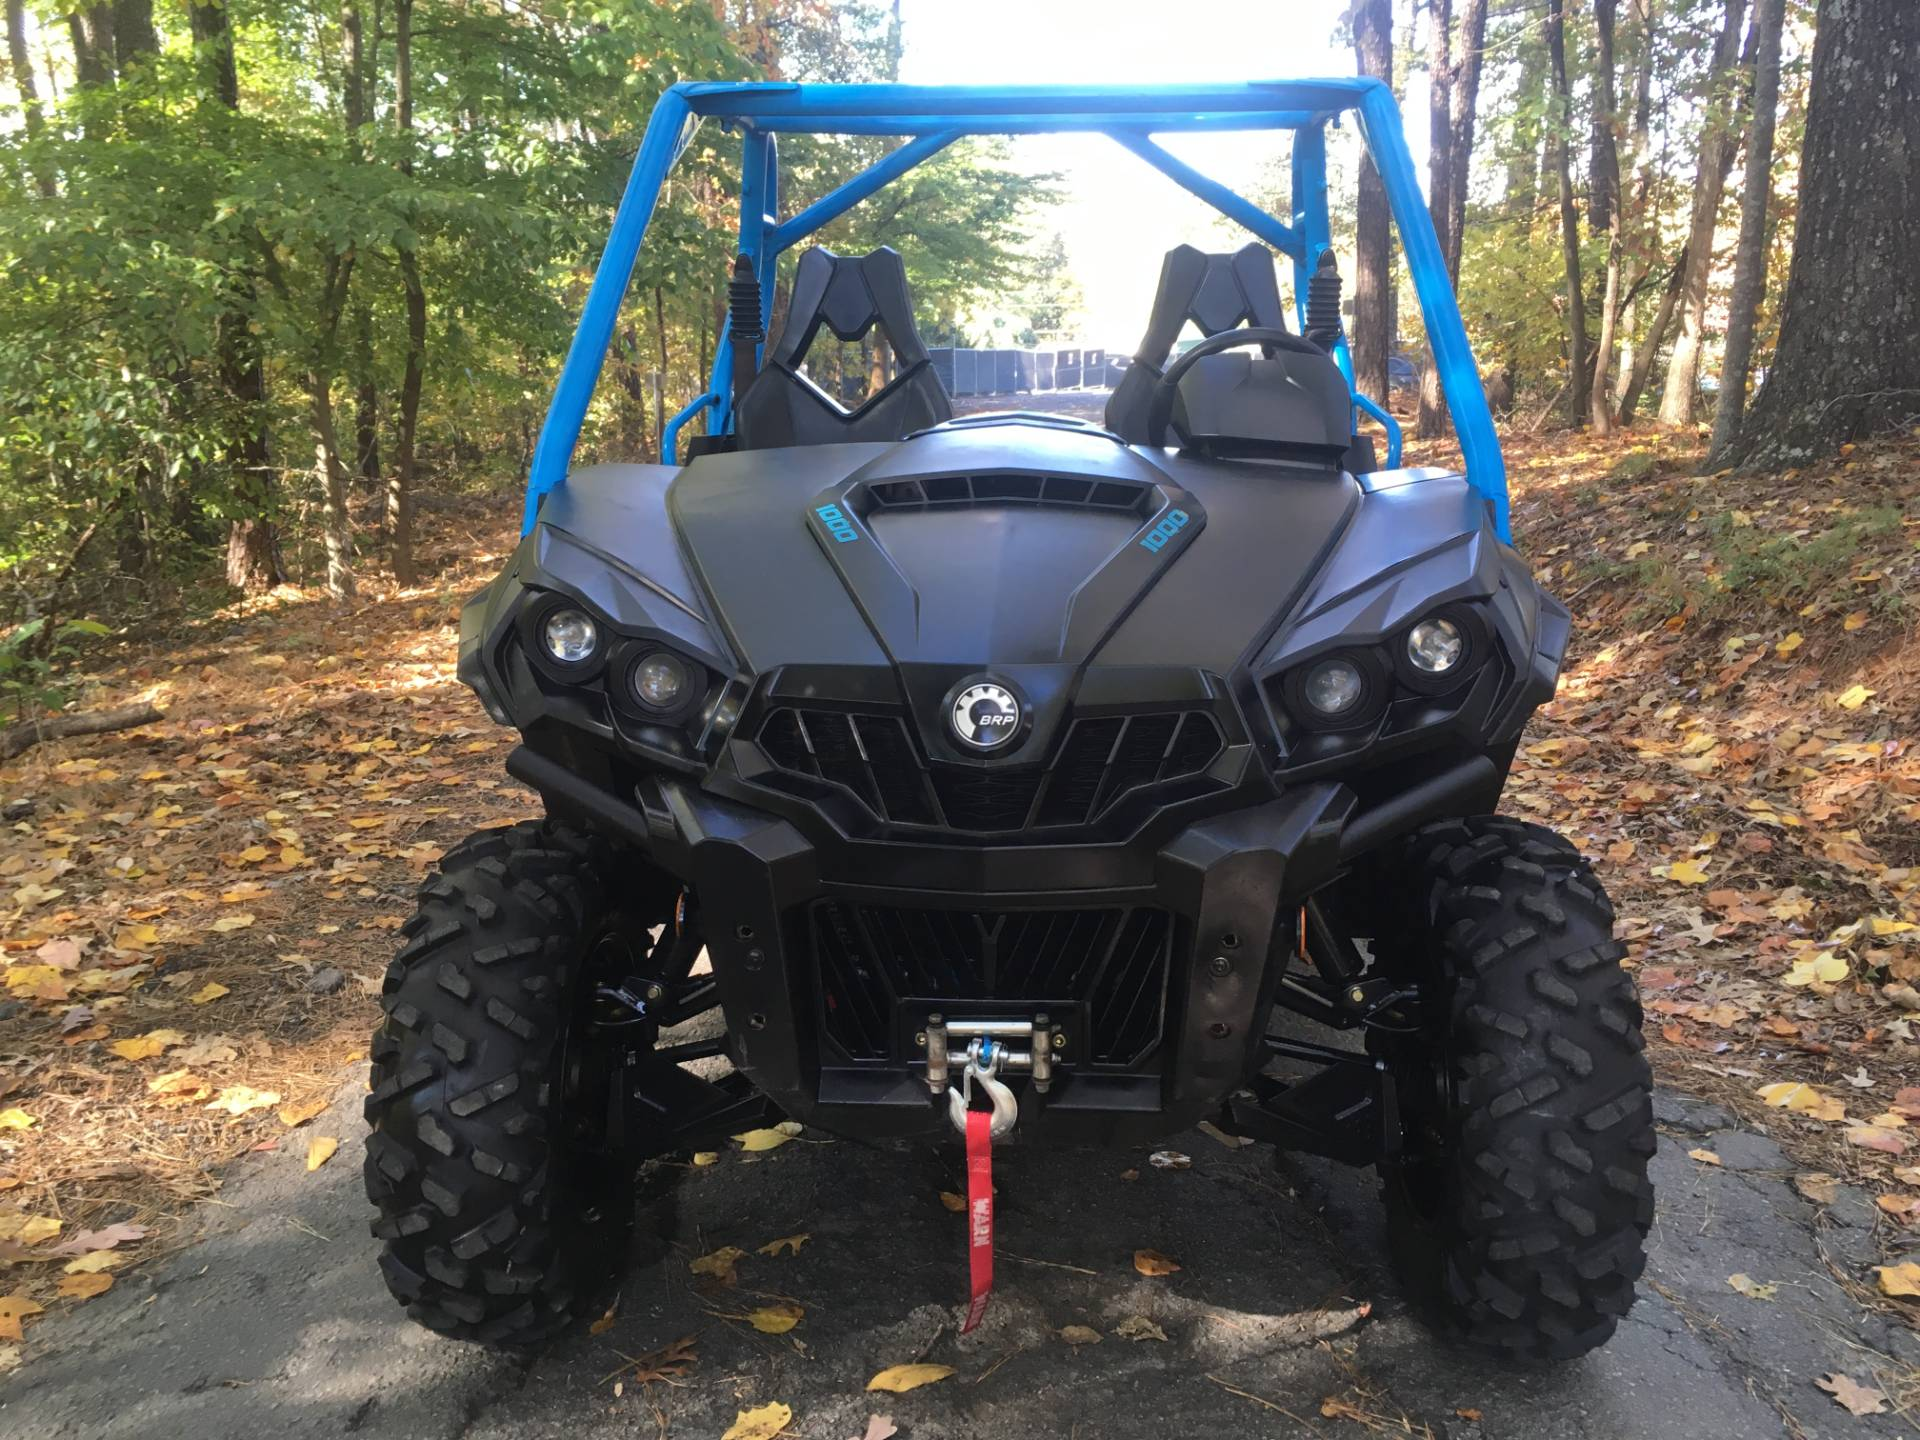 2016 CAN-AM COMMANDER 1000 XT in Woodstock, Georgia - Photo 1